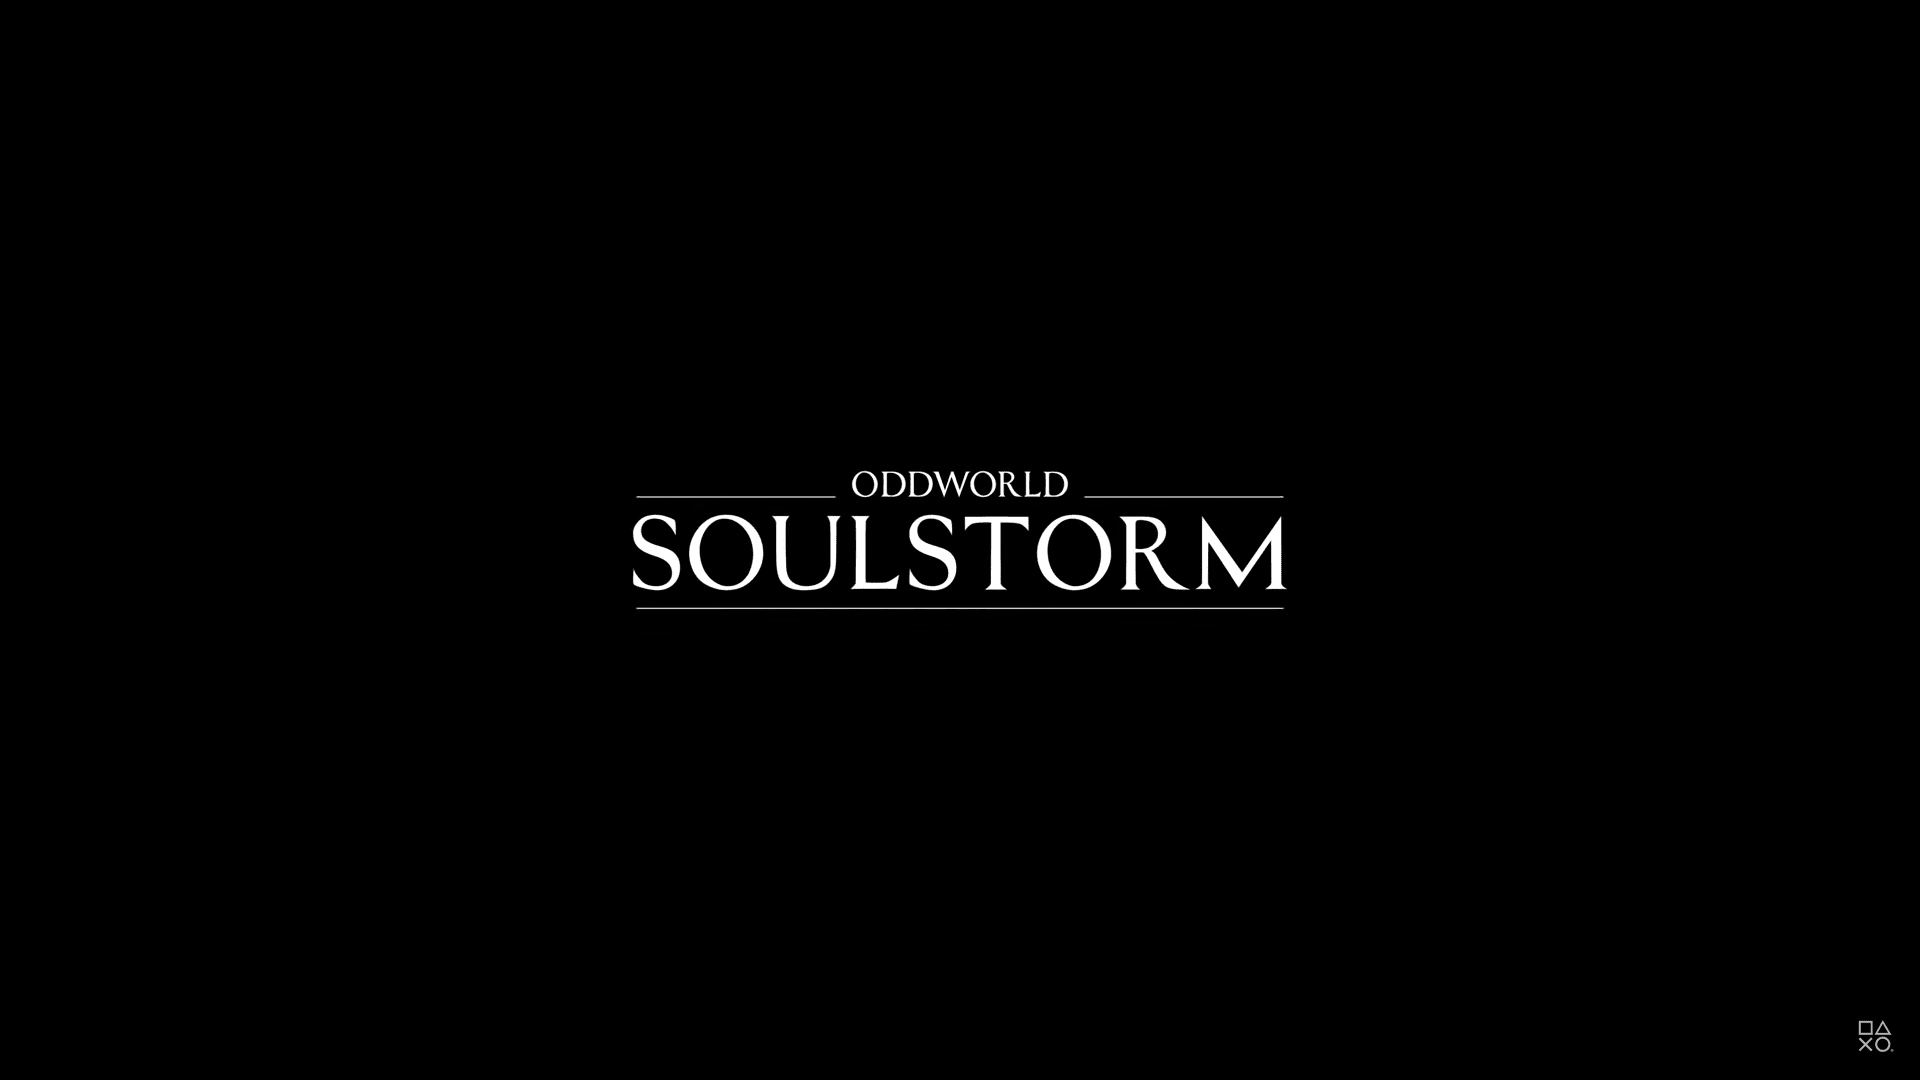 Sony Shows Off Oddworld: Soulstorm